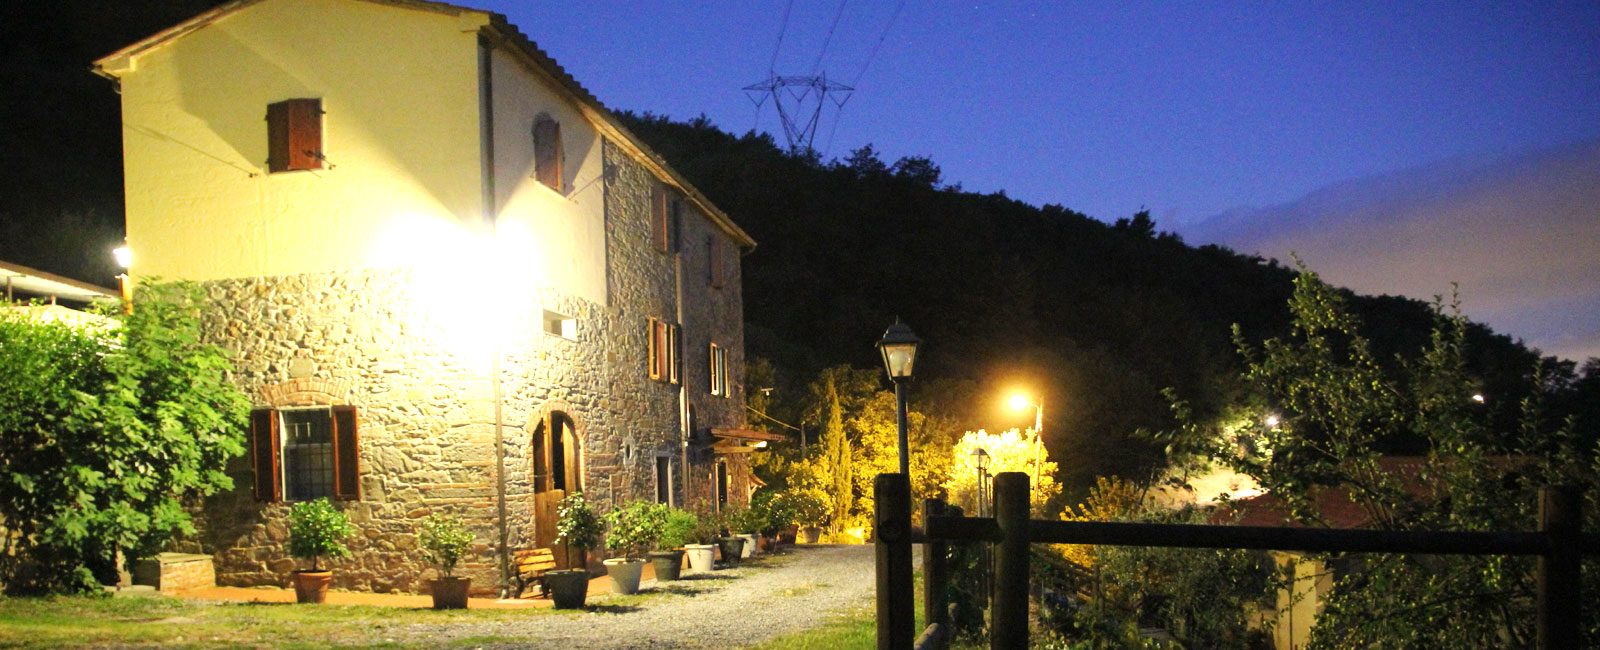 Farmhouse in Tuscany by night